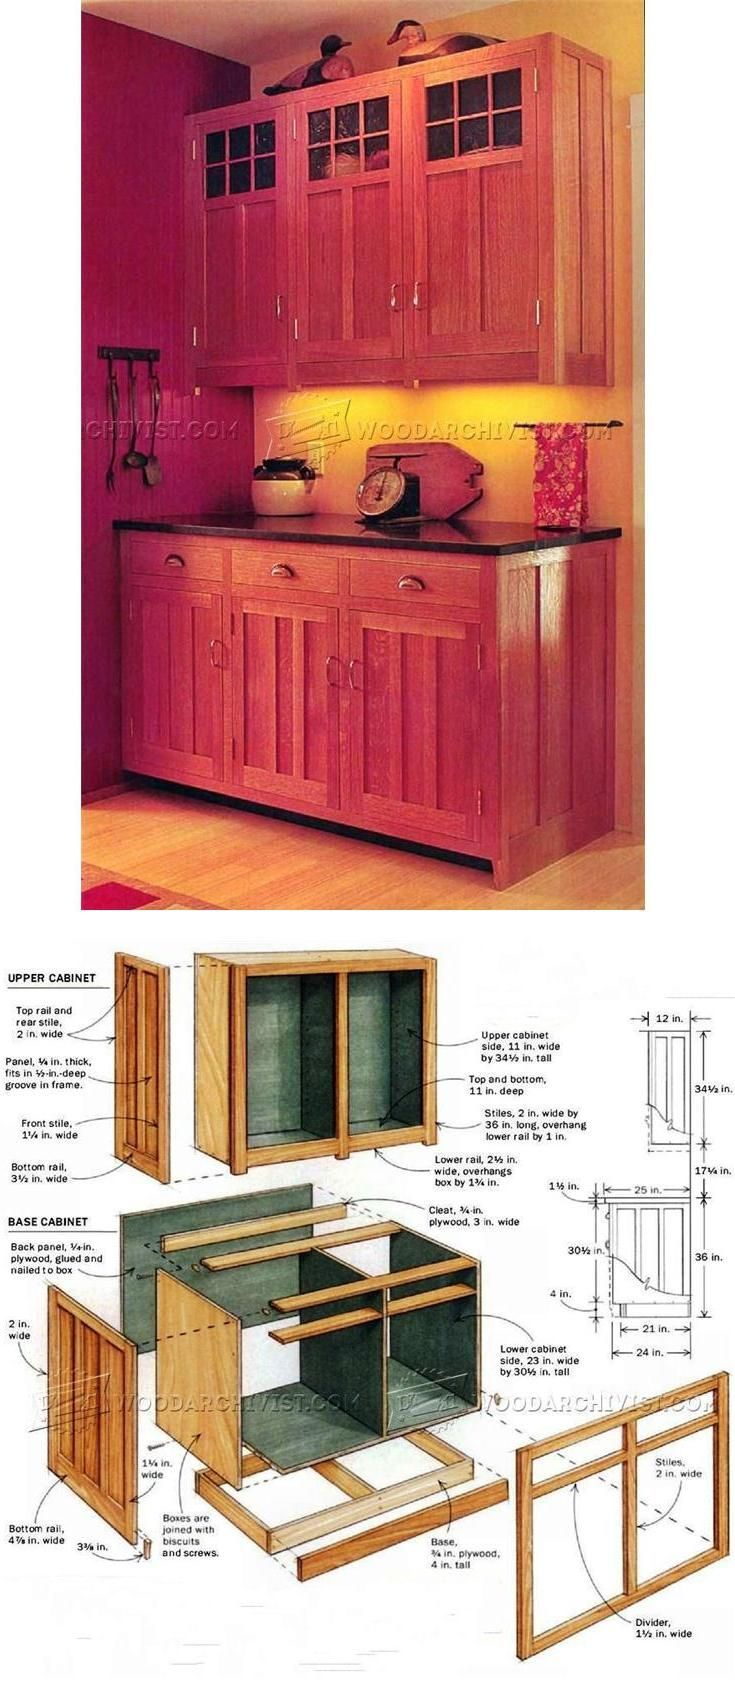 36 quot sink base kitchen cabinet momplex vanilla kitchen diy projects - Kitchen Cabinets Plans Furniture Plans And Projects Woodarchivist Com